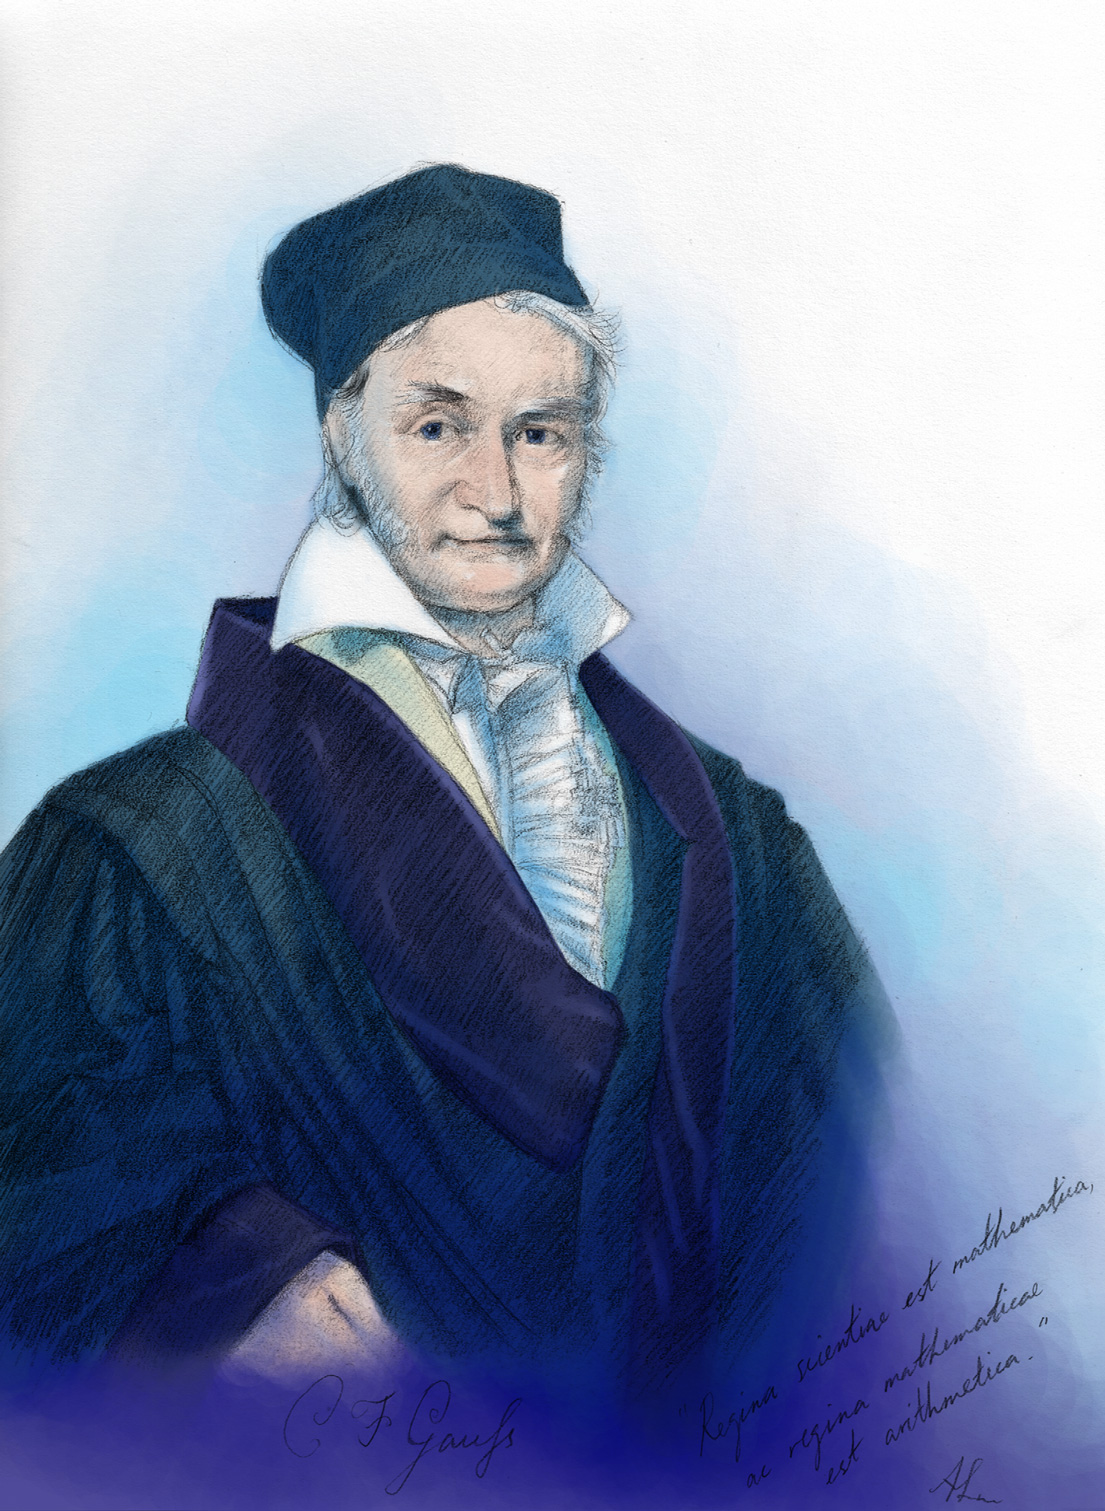 carl gauss Although he is best known as one of the greatest mathematicians of all time, carl friedrich gauss was also a pioneer in the study of magnetism and electricity.